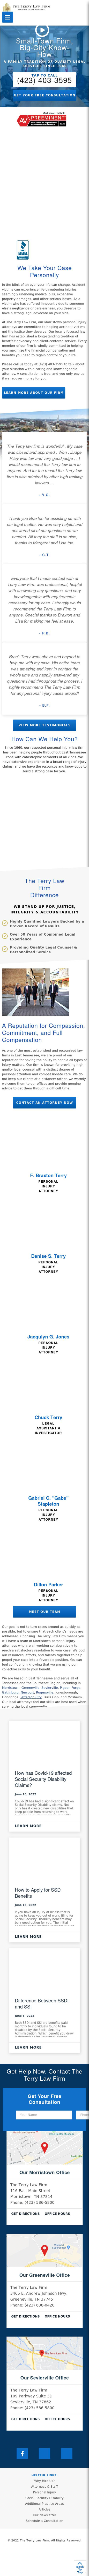 The Terry Law Firm - Greeneville TN Lawyers